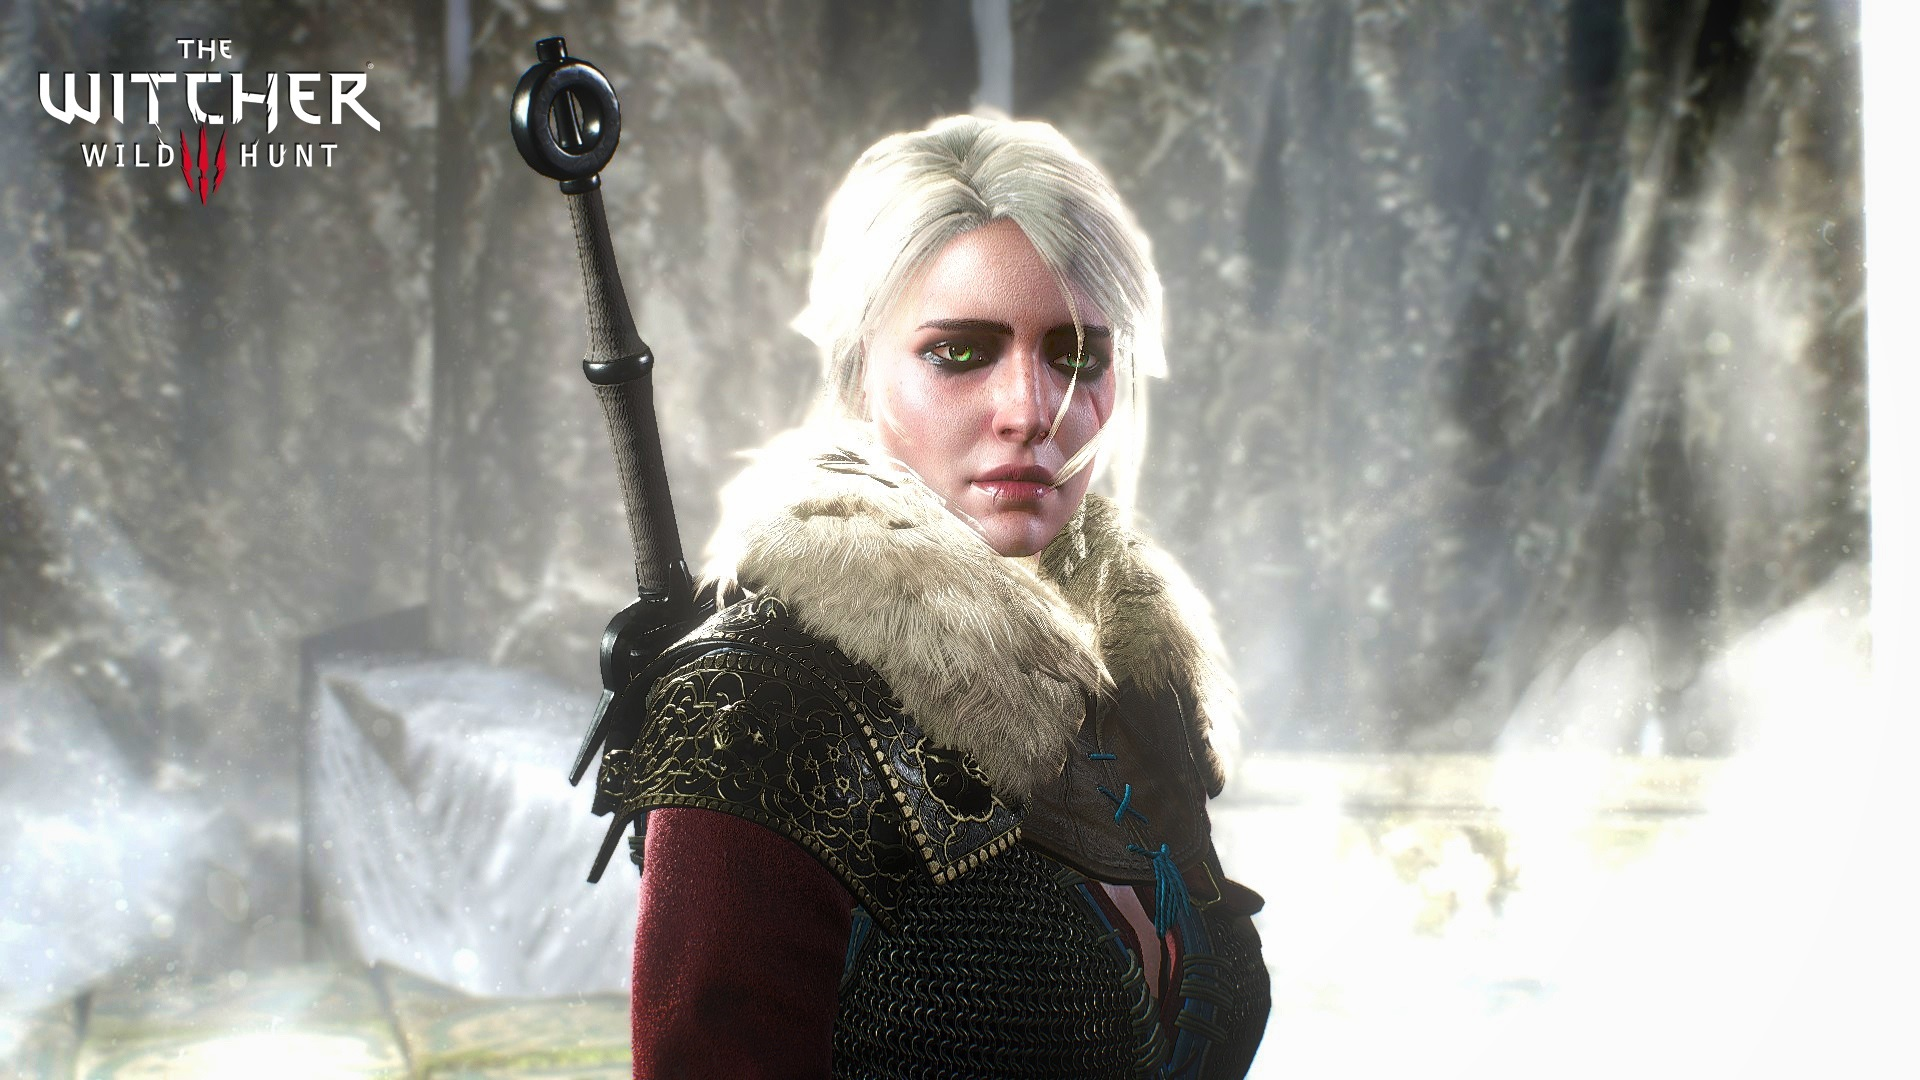 Fondos De Pantalla The Witcher 3 Wild Hunt La Muchacha Del